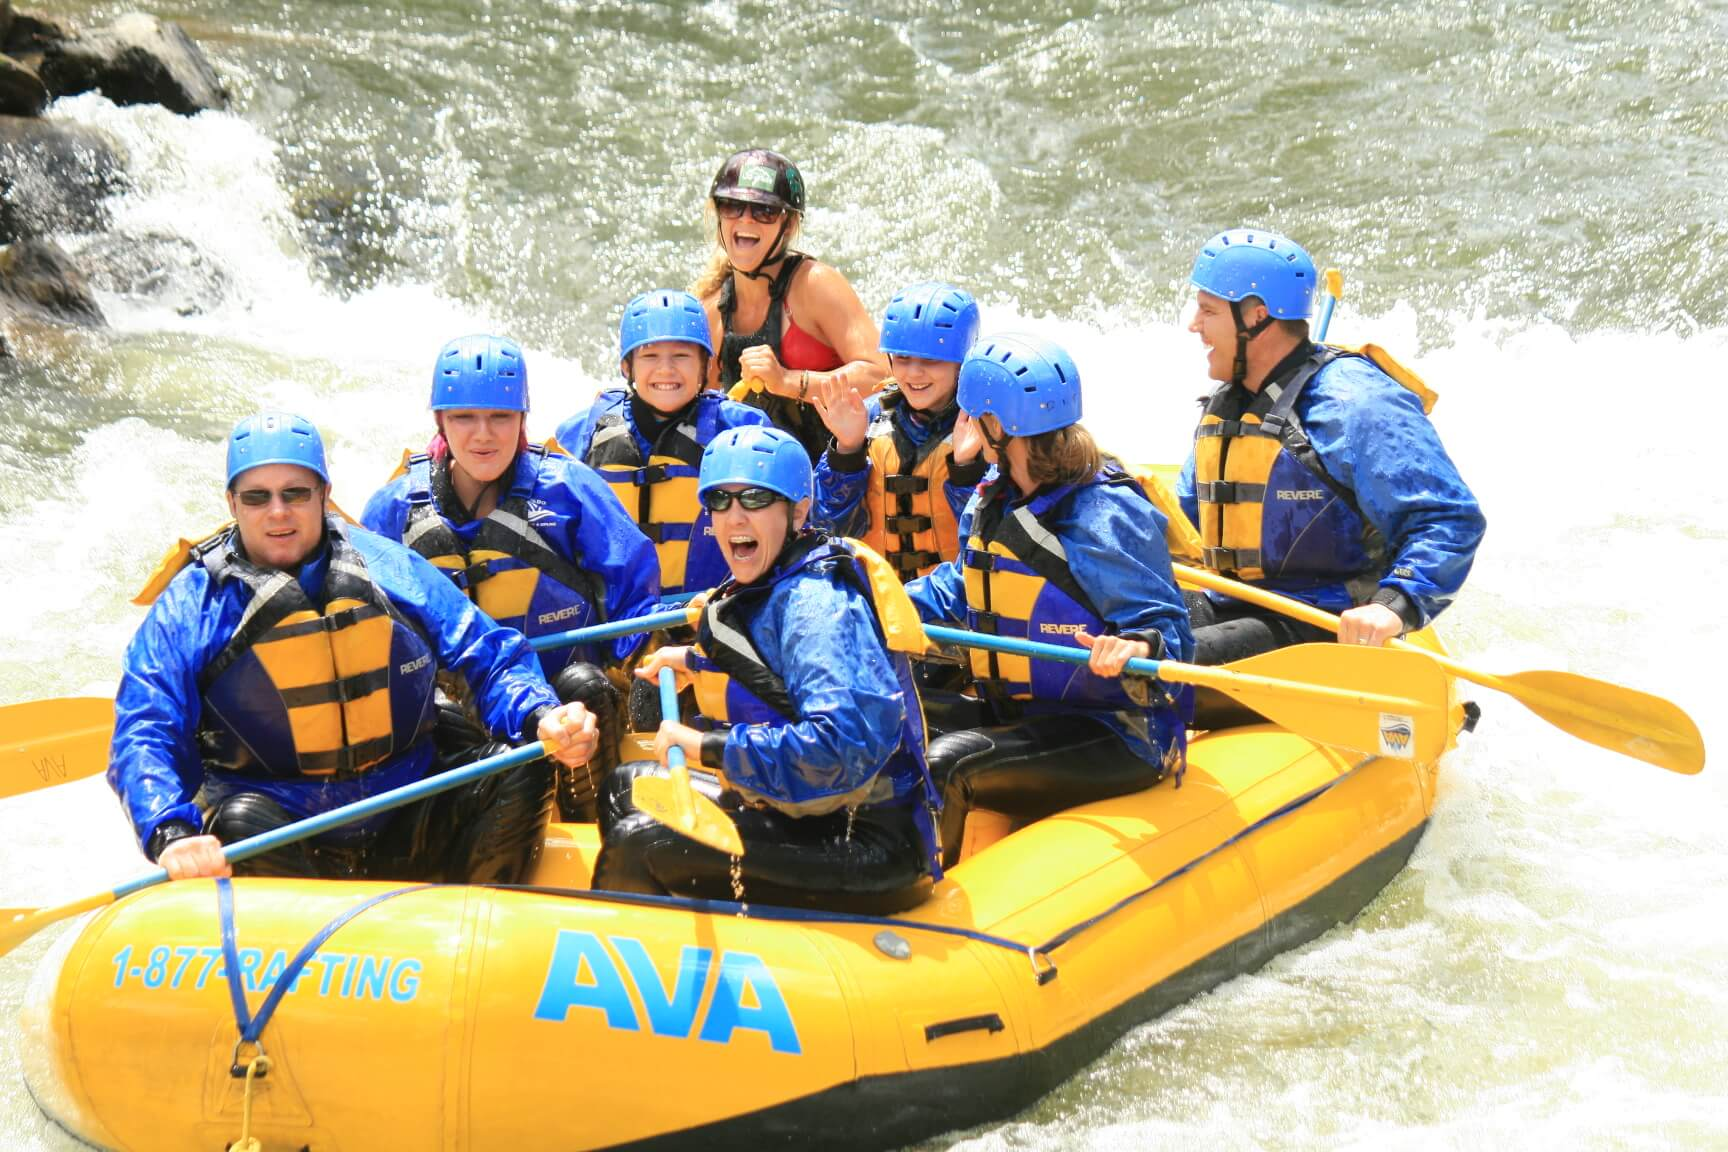 Whitewater Rafting in Colorado